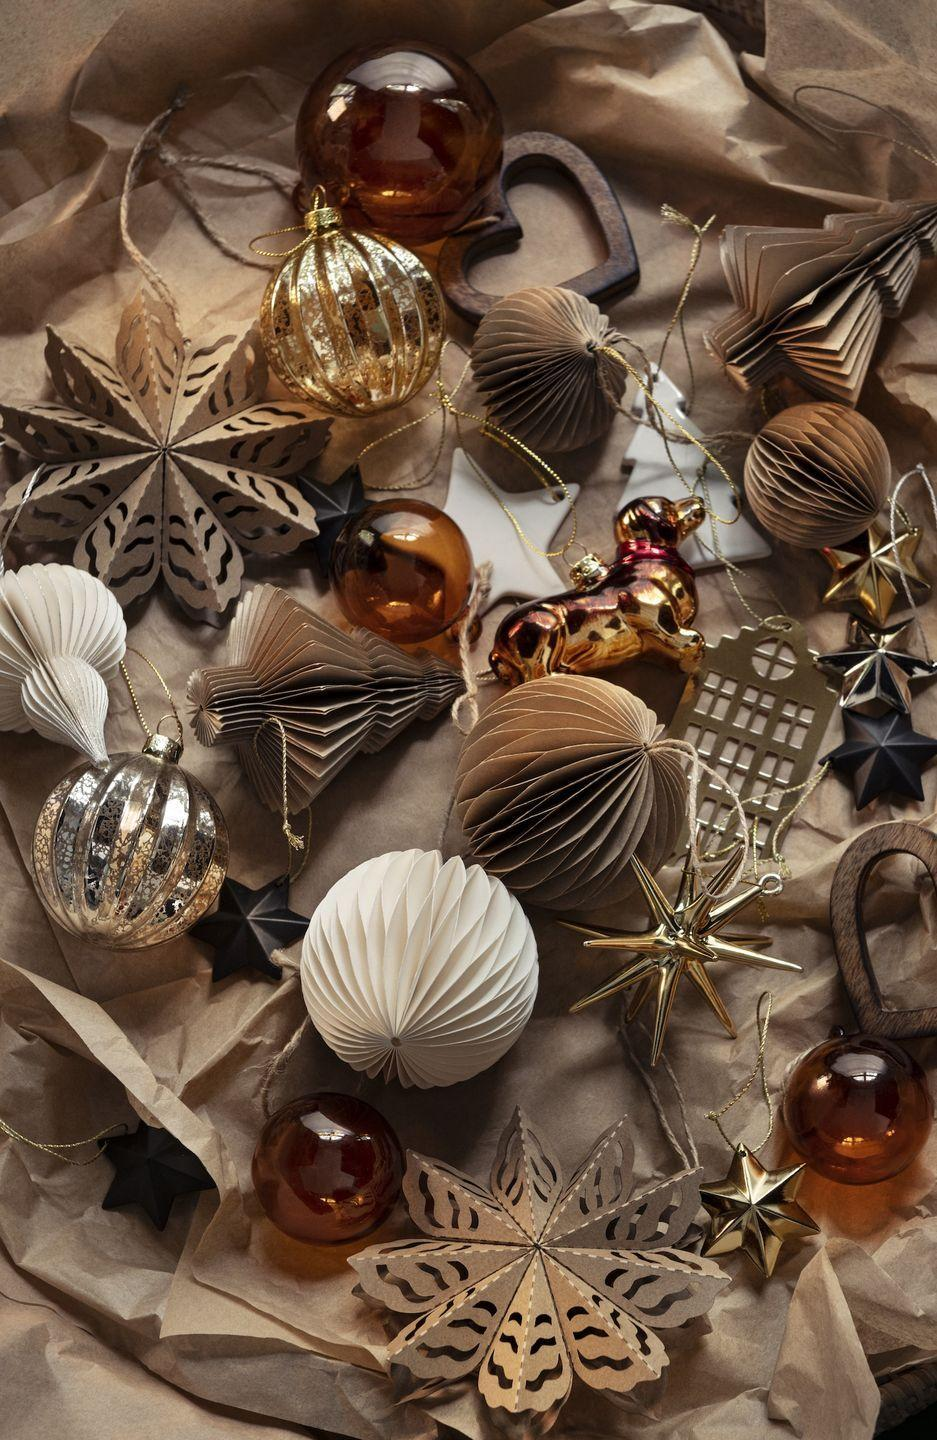 "<p>Deck the halls in style this year with H&M Home's new rustic-inspired <a href=""https://www.housebeautiful.com/uk/decorate/display/g177/best-christmas-tree-baubles/"" rel=""nofollow noopener"" target=""_blank"" data-ylk=""slk:decorations"" class=""link rapid-noclick-resp"">decorations</a>. </p><p><a class=""link rapid-noclick-resp"" href=""https://go.redirectingat.com?id=127X1599956&url=https%3A%2F%2Fwww2.hm.com%2Fen_gb%2Fhome%2Fseasonal-trending%2Fchristmas.html&sref=https%3A%2F%2Fwww.housebeautiful.com%2Fuk%2Flifestyle%2Fshopping%2Fg34268238%2Fhandm-home-christmas%2F"" rel=""nofollow noopener"" target=""_blank"" data-ylk=""slk:SHOP THE CHRISTMAS RANGE"">SHOP THE CHRISTMAS RANGE</a> </p>"